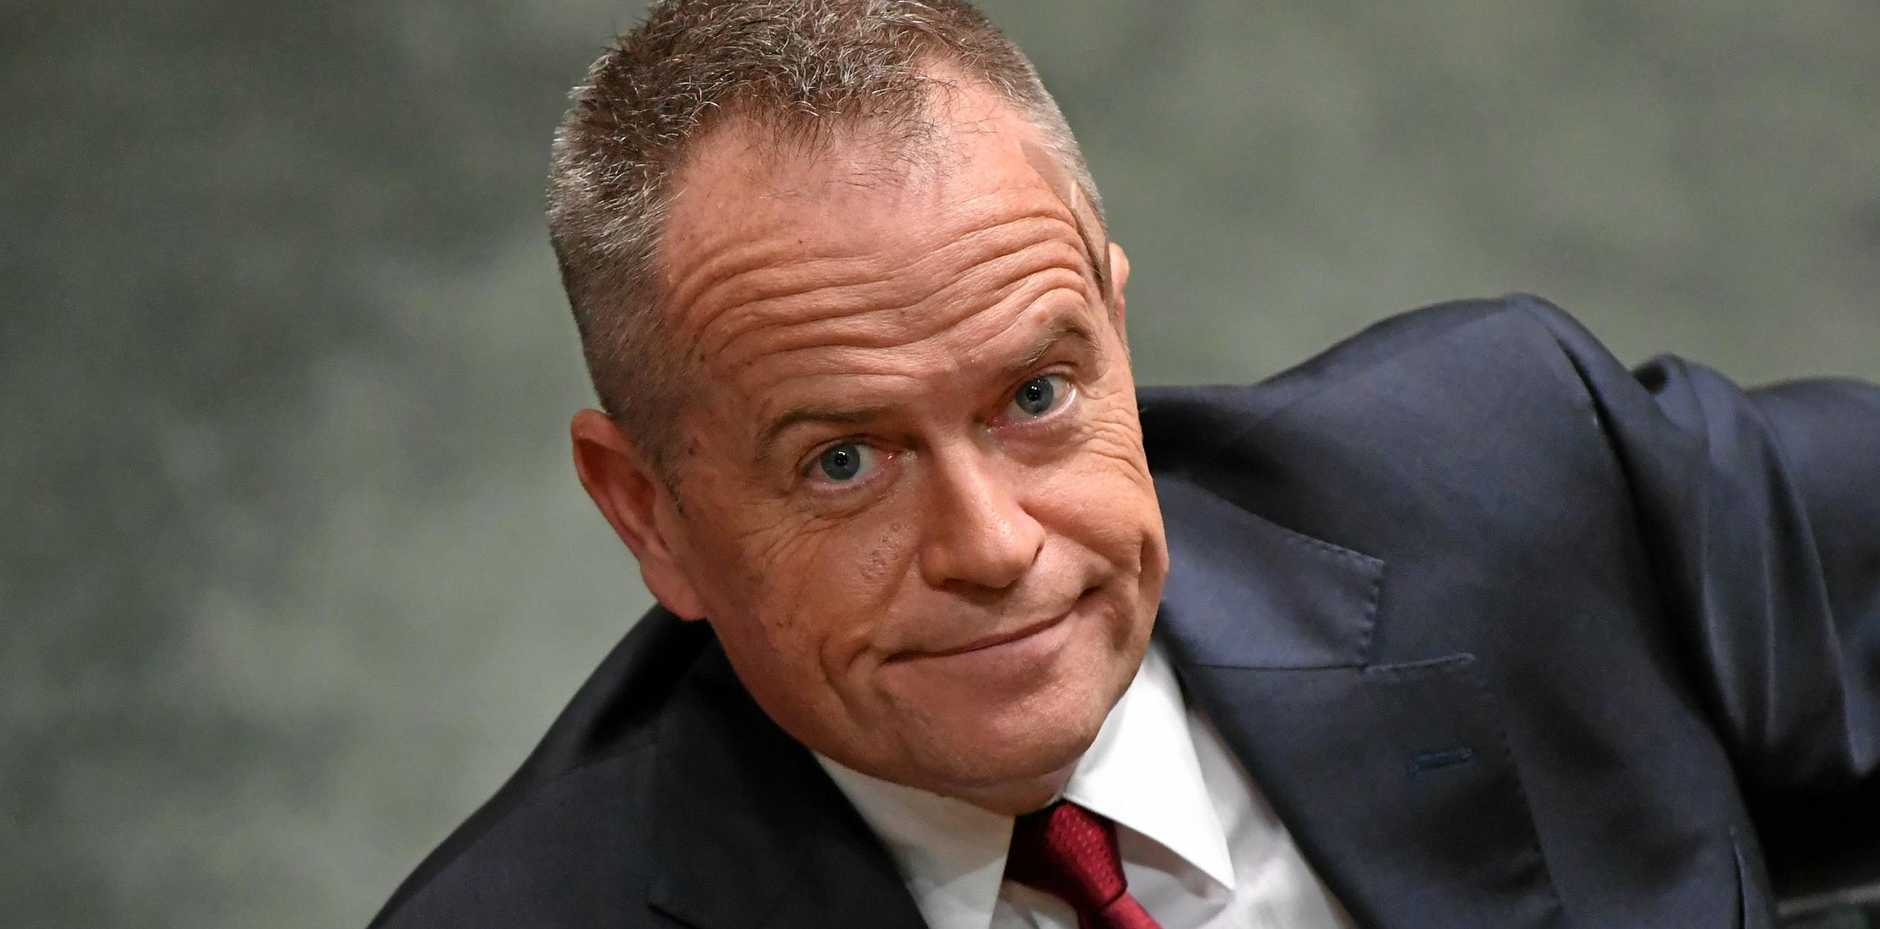 DATE CLAIMER: With the by-elections falling on the same date as the ALP national conference, Leader of the Opposition Bill Shorten can delay or even cancel the conference, sweeping the ugly truths of the party's more extreme wing under the carpet.